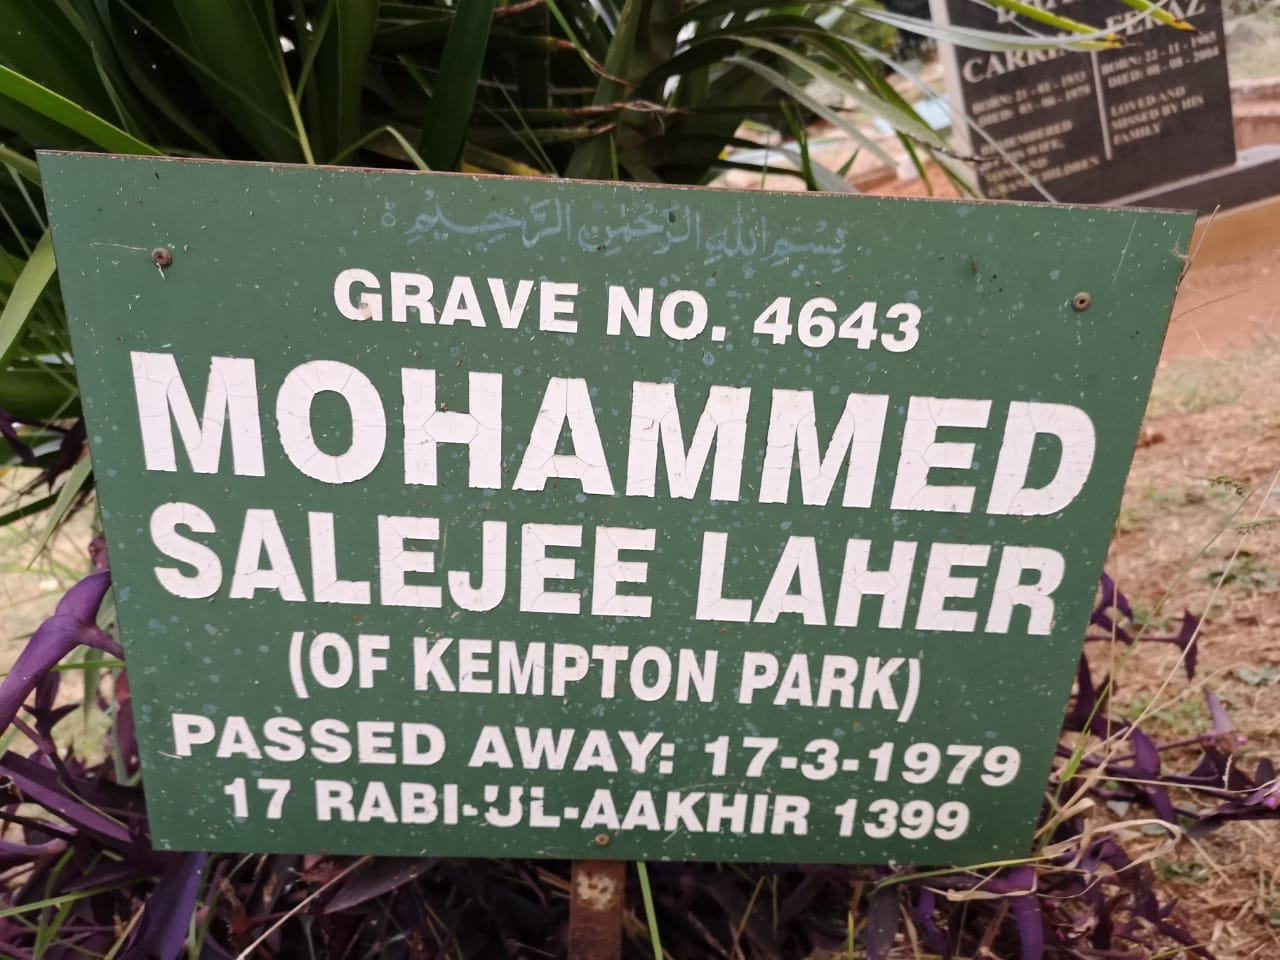 Mohammed Salejee Laher (Bawa) Kempton Park March 17, 1979